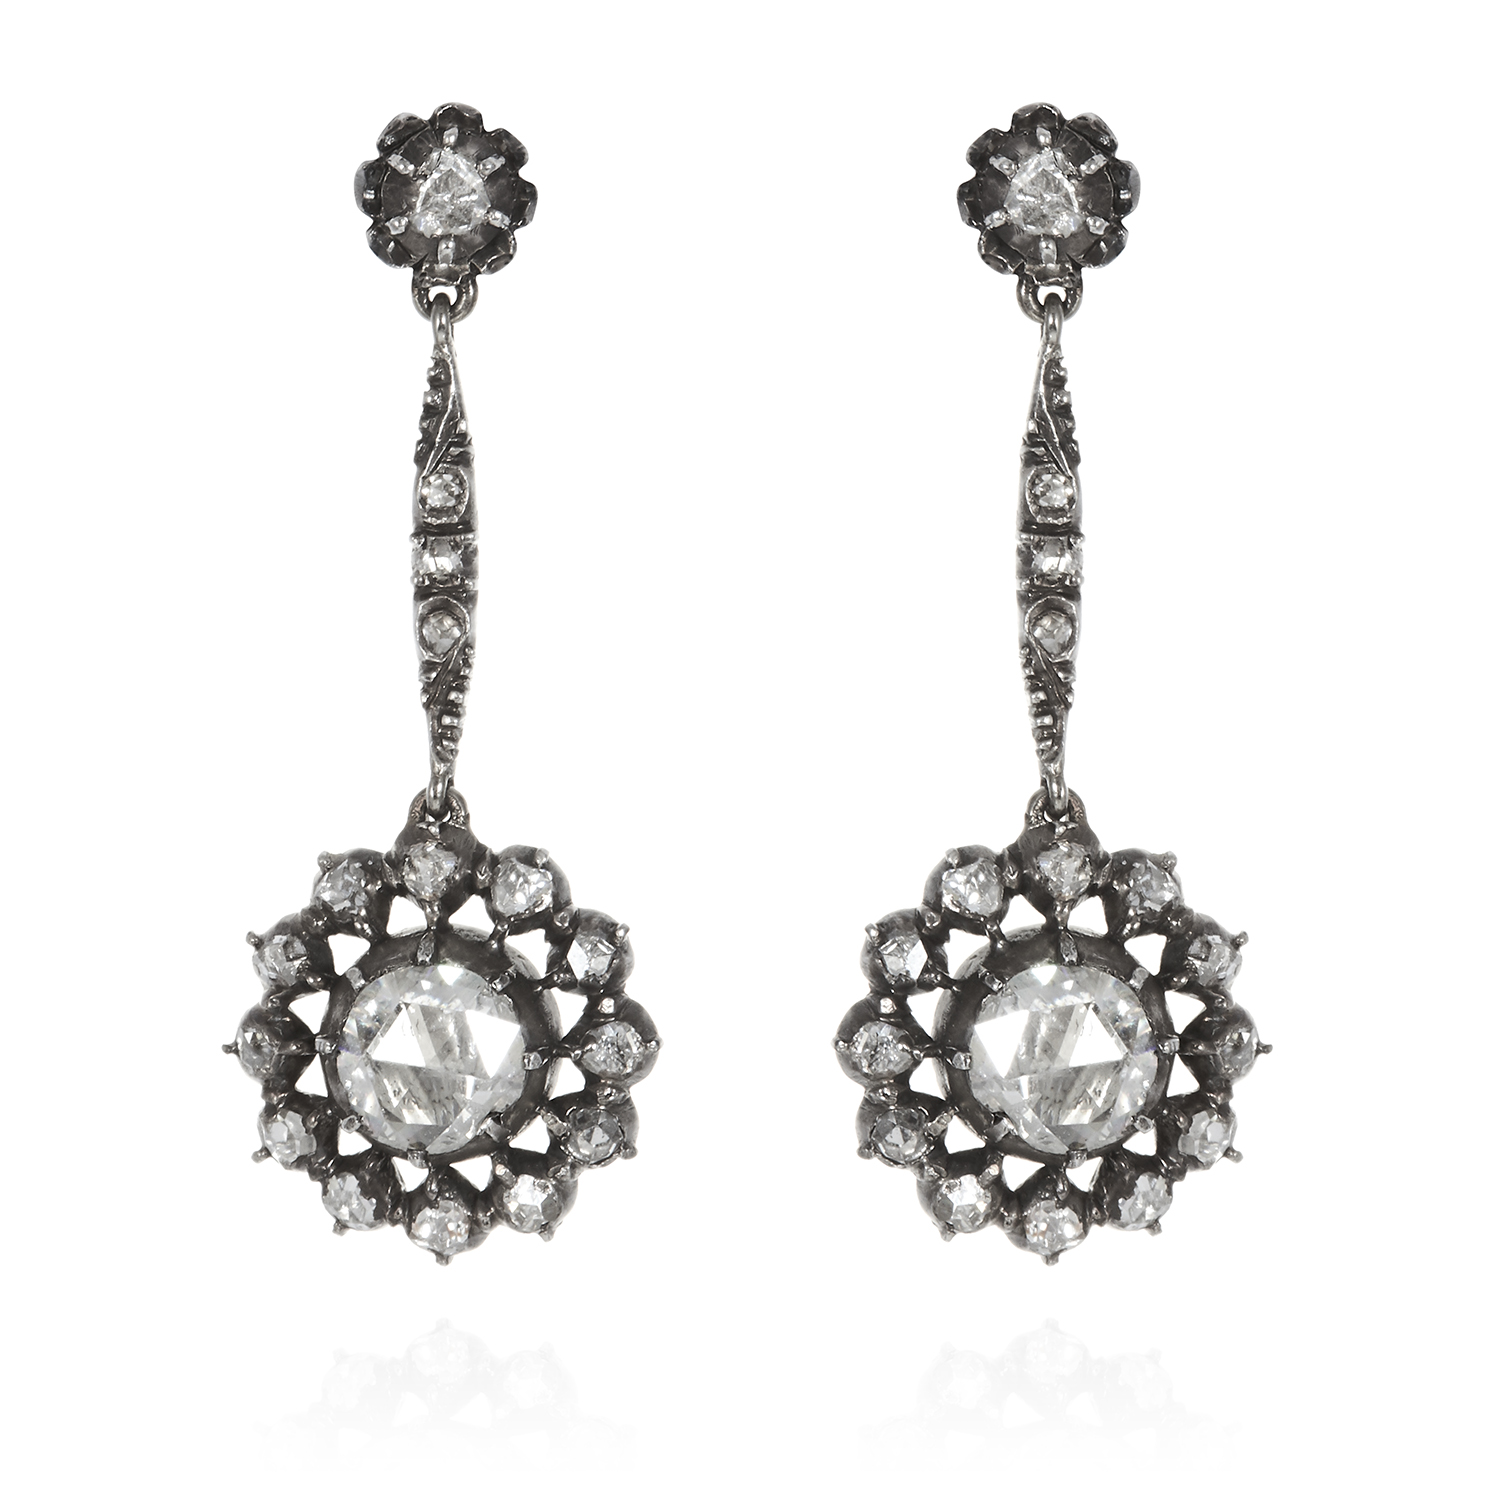 Los 32 - A PAIR OF ANTIQUE DIAMOND DROP EARRINGS, 19TH CENTURY in yellow gold and silver, set with a rose cut